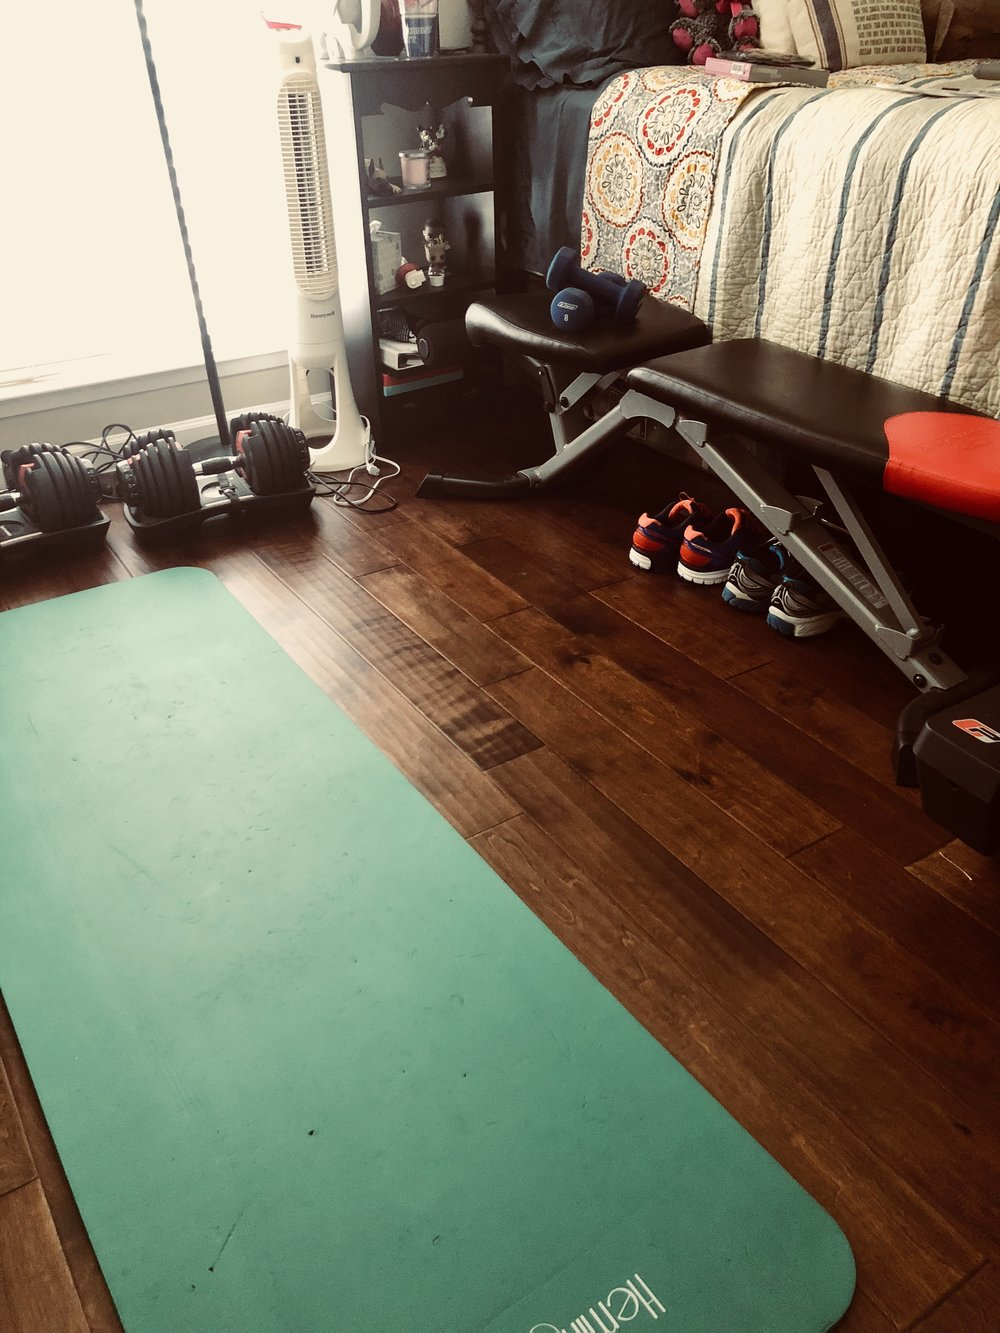 Our workout/guest room! All the space you need!